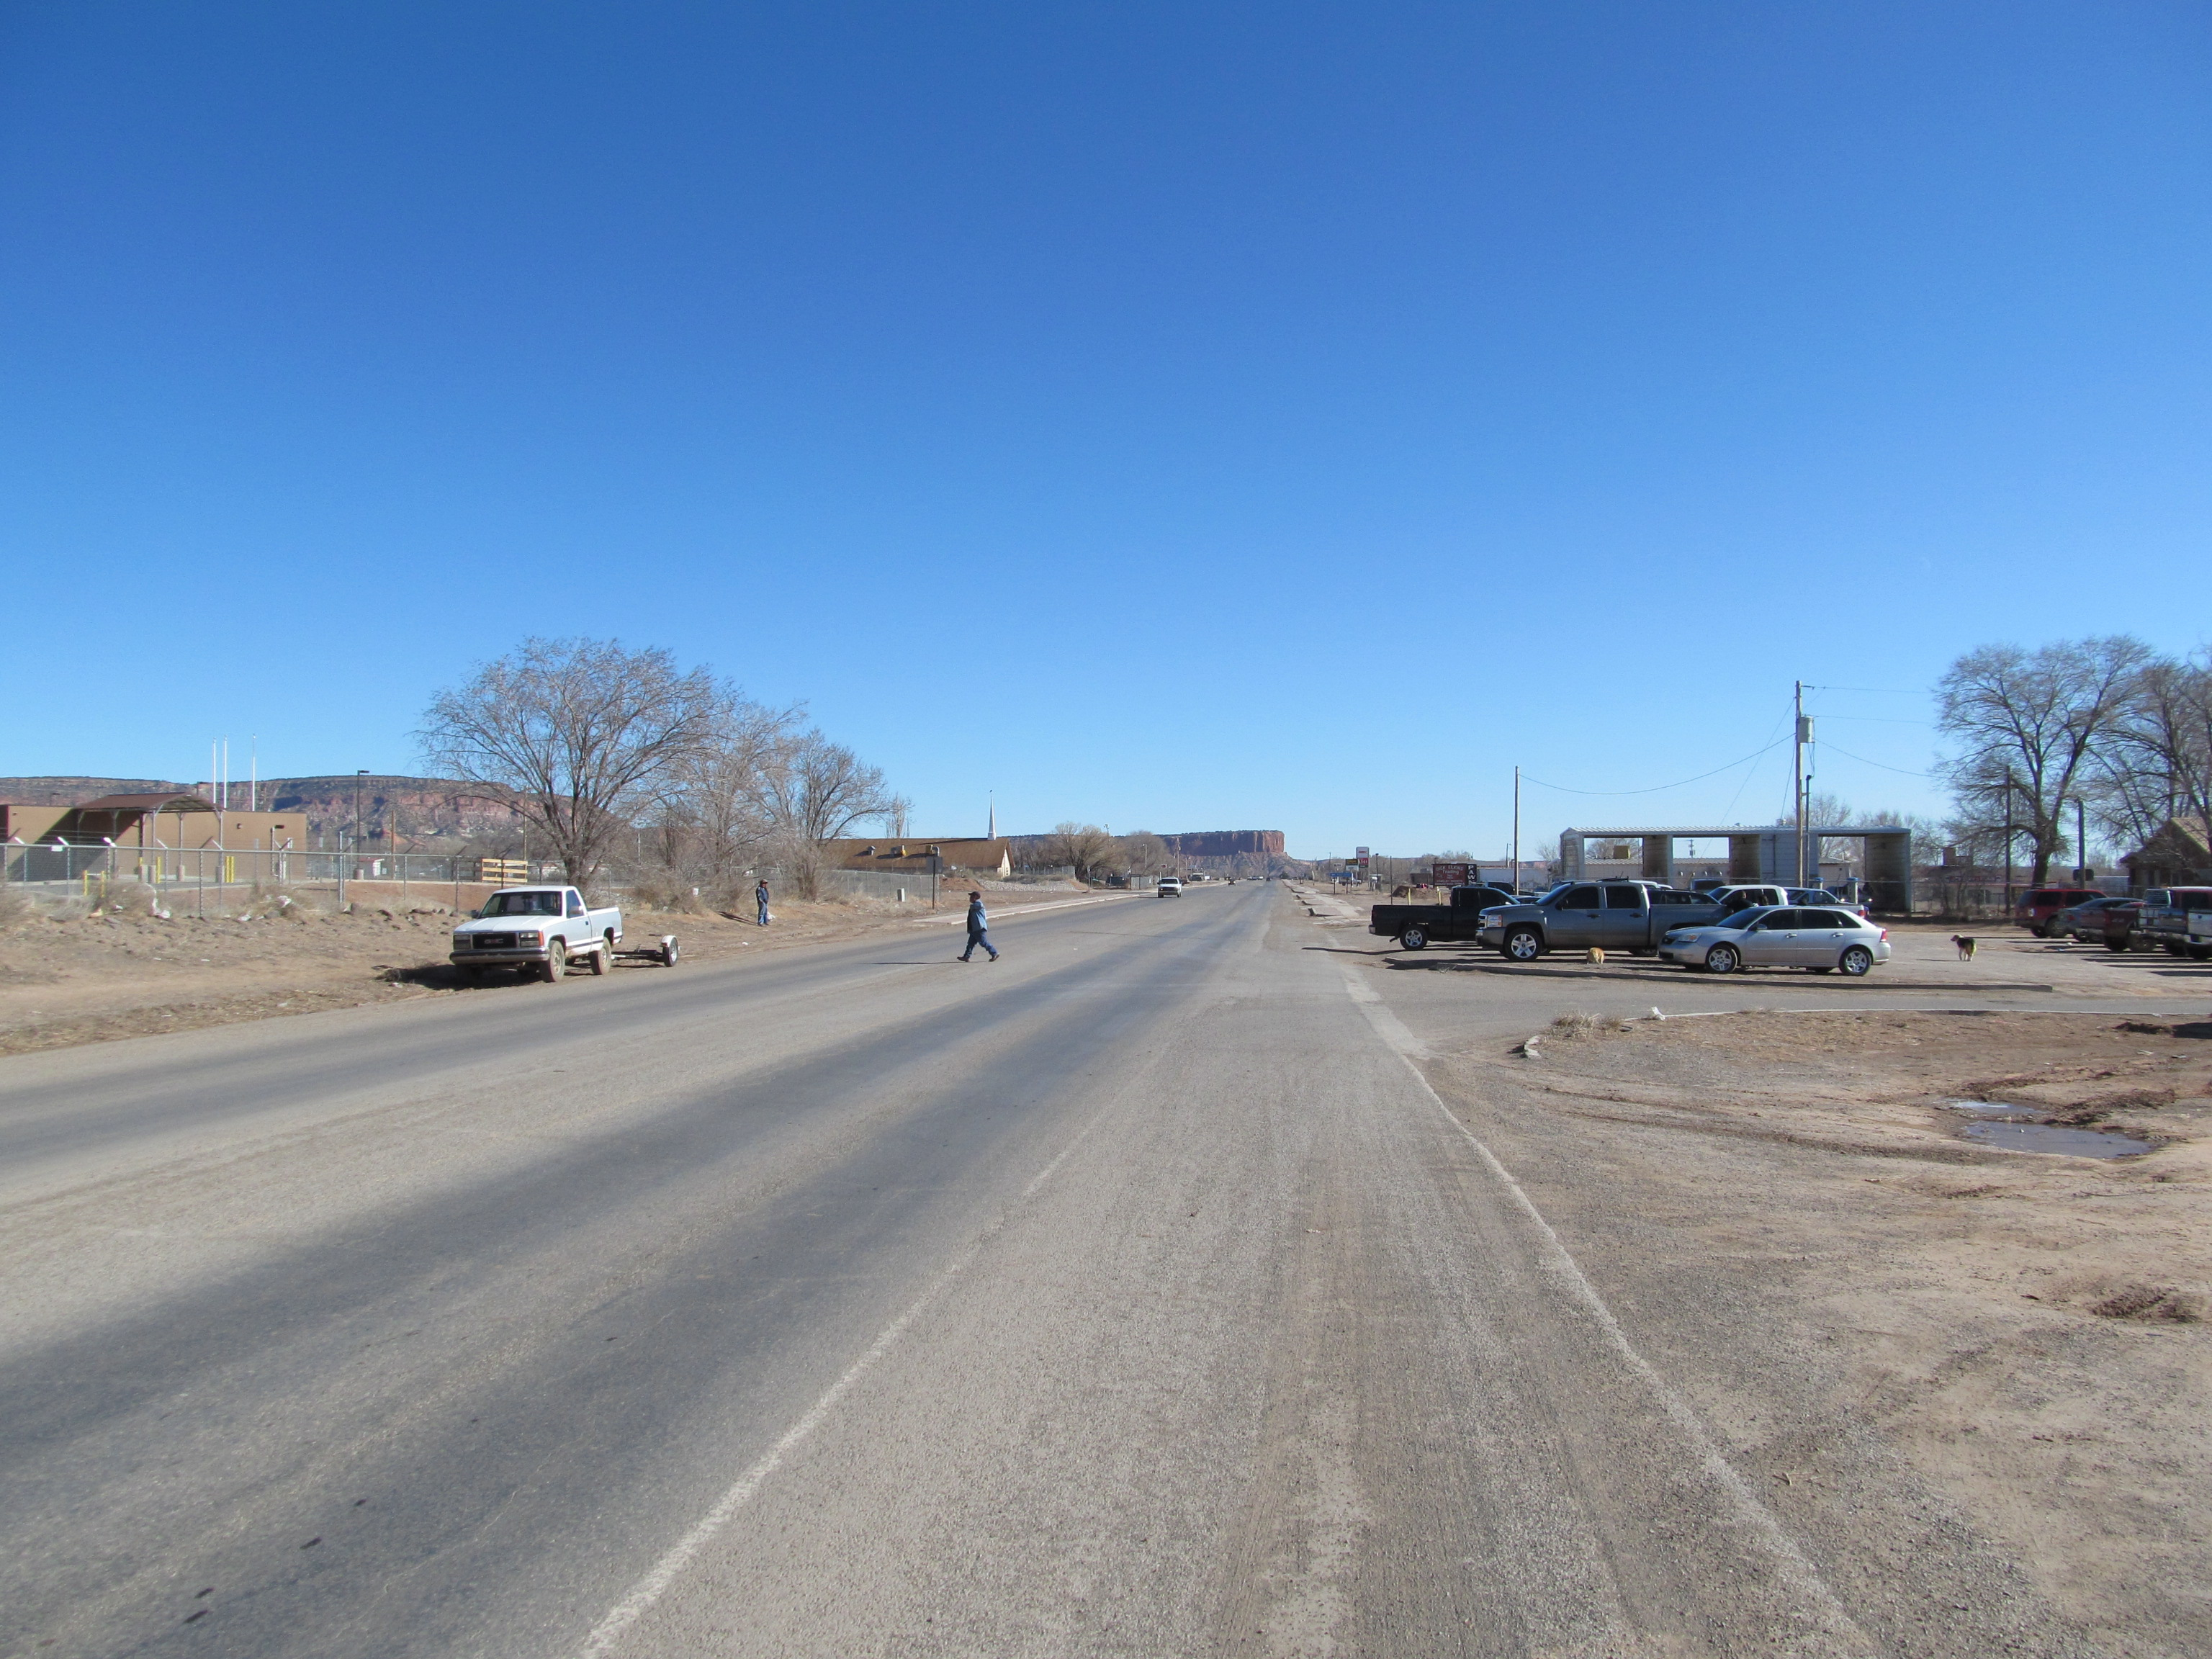 thoreau new mexico report The state office of the medical investigator says saturday night that five of the people killed in thursday's crash near thoreau, new mexico, are sadie thomas, 50, charla bahe, 34, terry mason, 45.